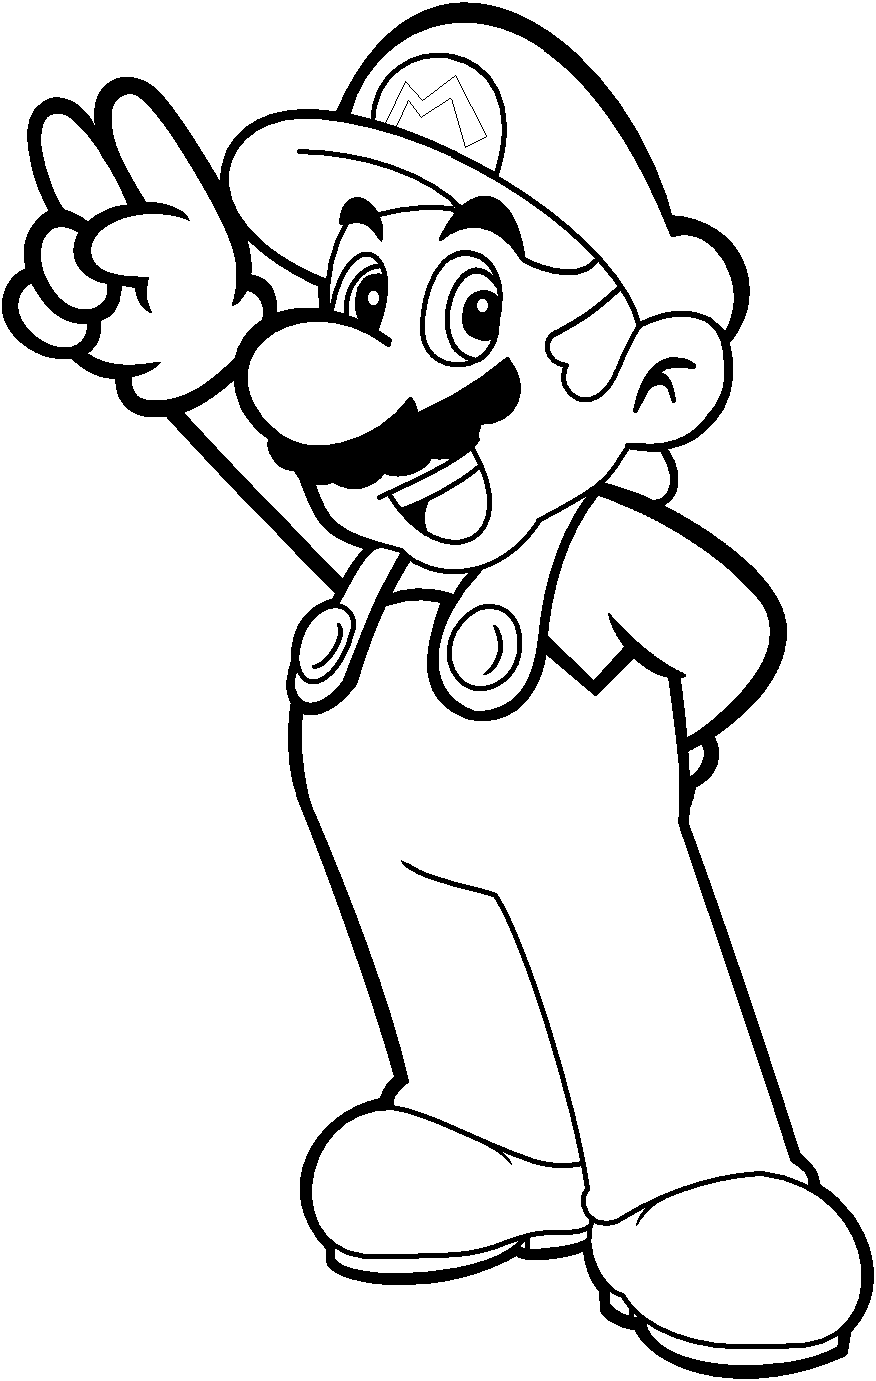 mario coloring book pages mario coloring pages themes best apps for kids pages mario coloring book